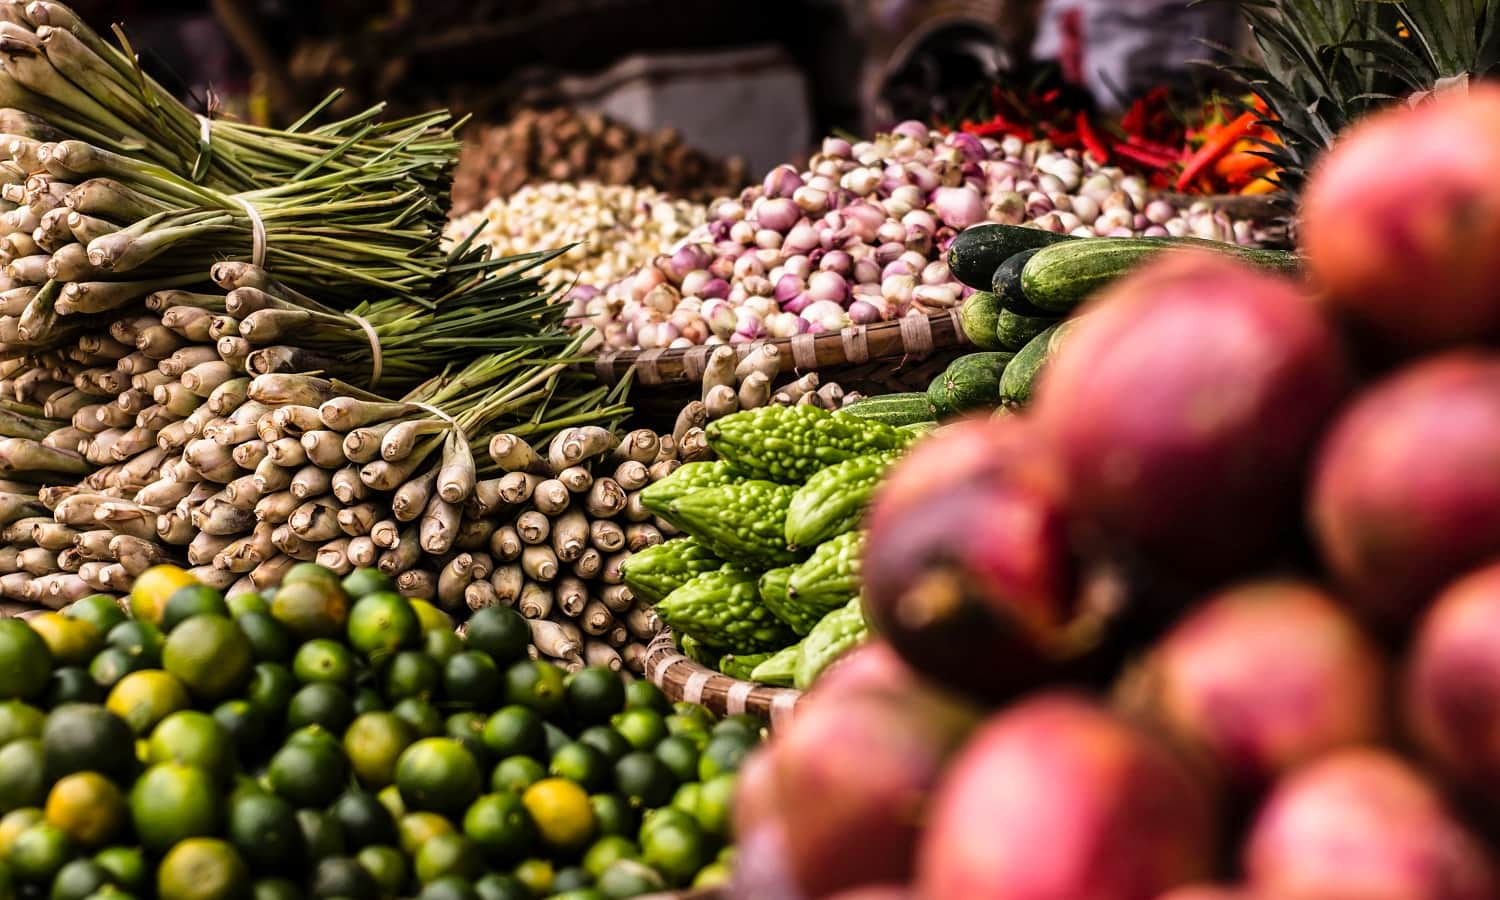 Only 4 percent of India's perishable crops move through cold-chains, a big reason why food losses and malnourishment are still pervasive in the world's second most populous country. A new report critiques the country' ambitious food cooling strategy, saying it is shortchanging small rural farmers and is overly reliant on old technologies that are energy inefficient and high polluting.